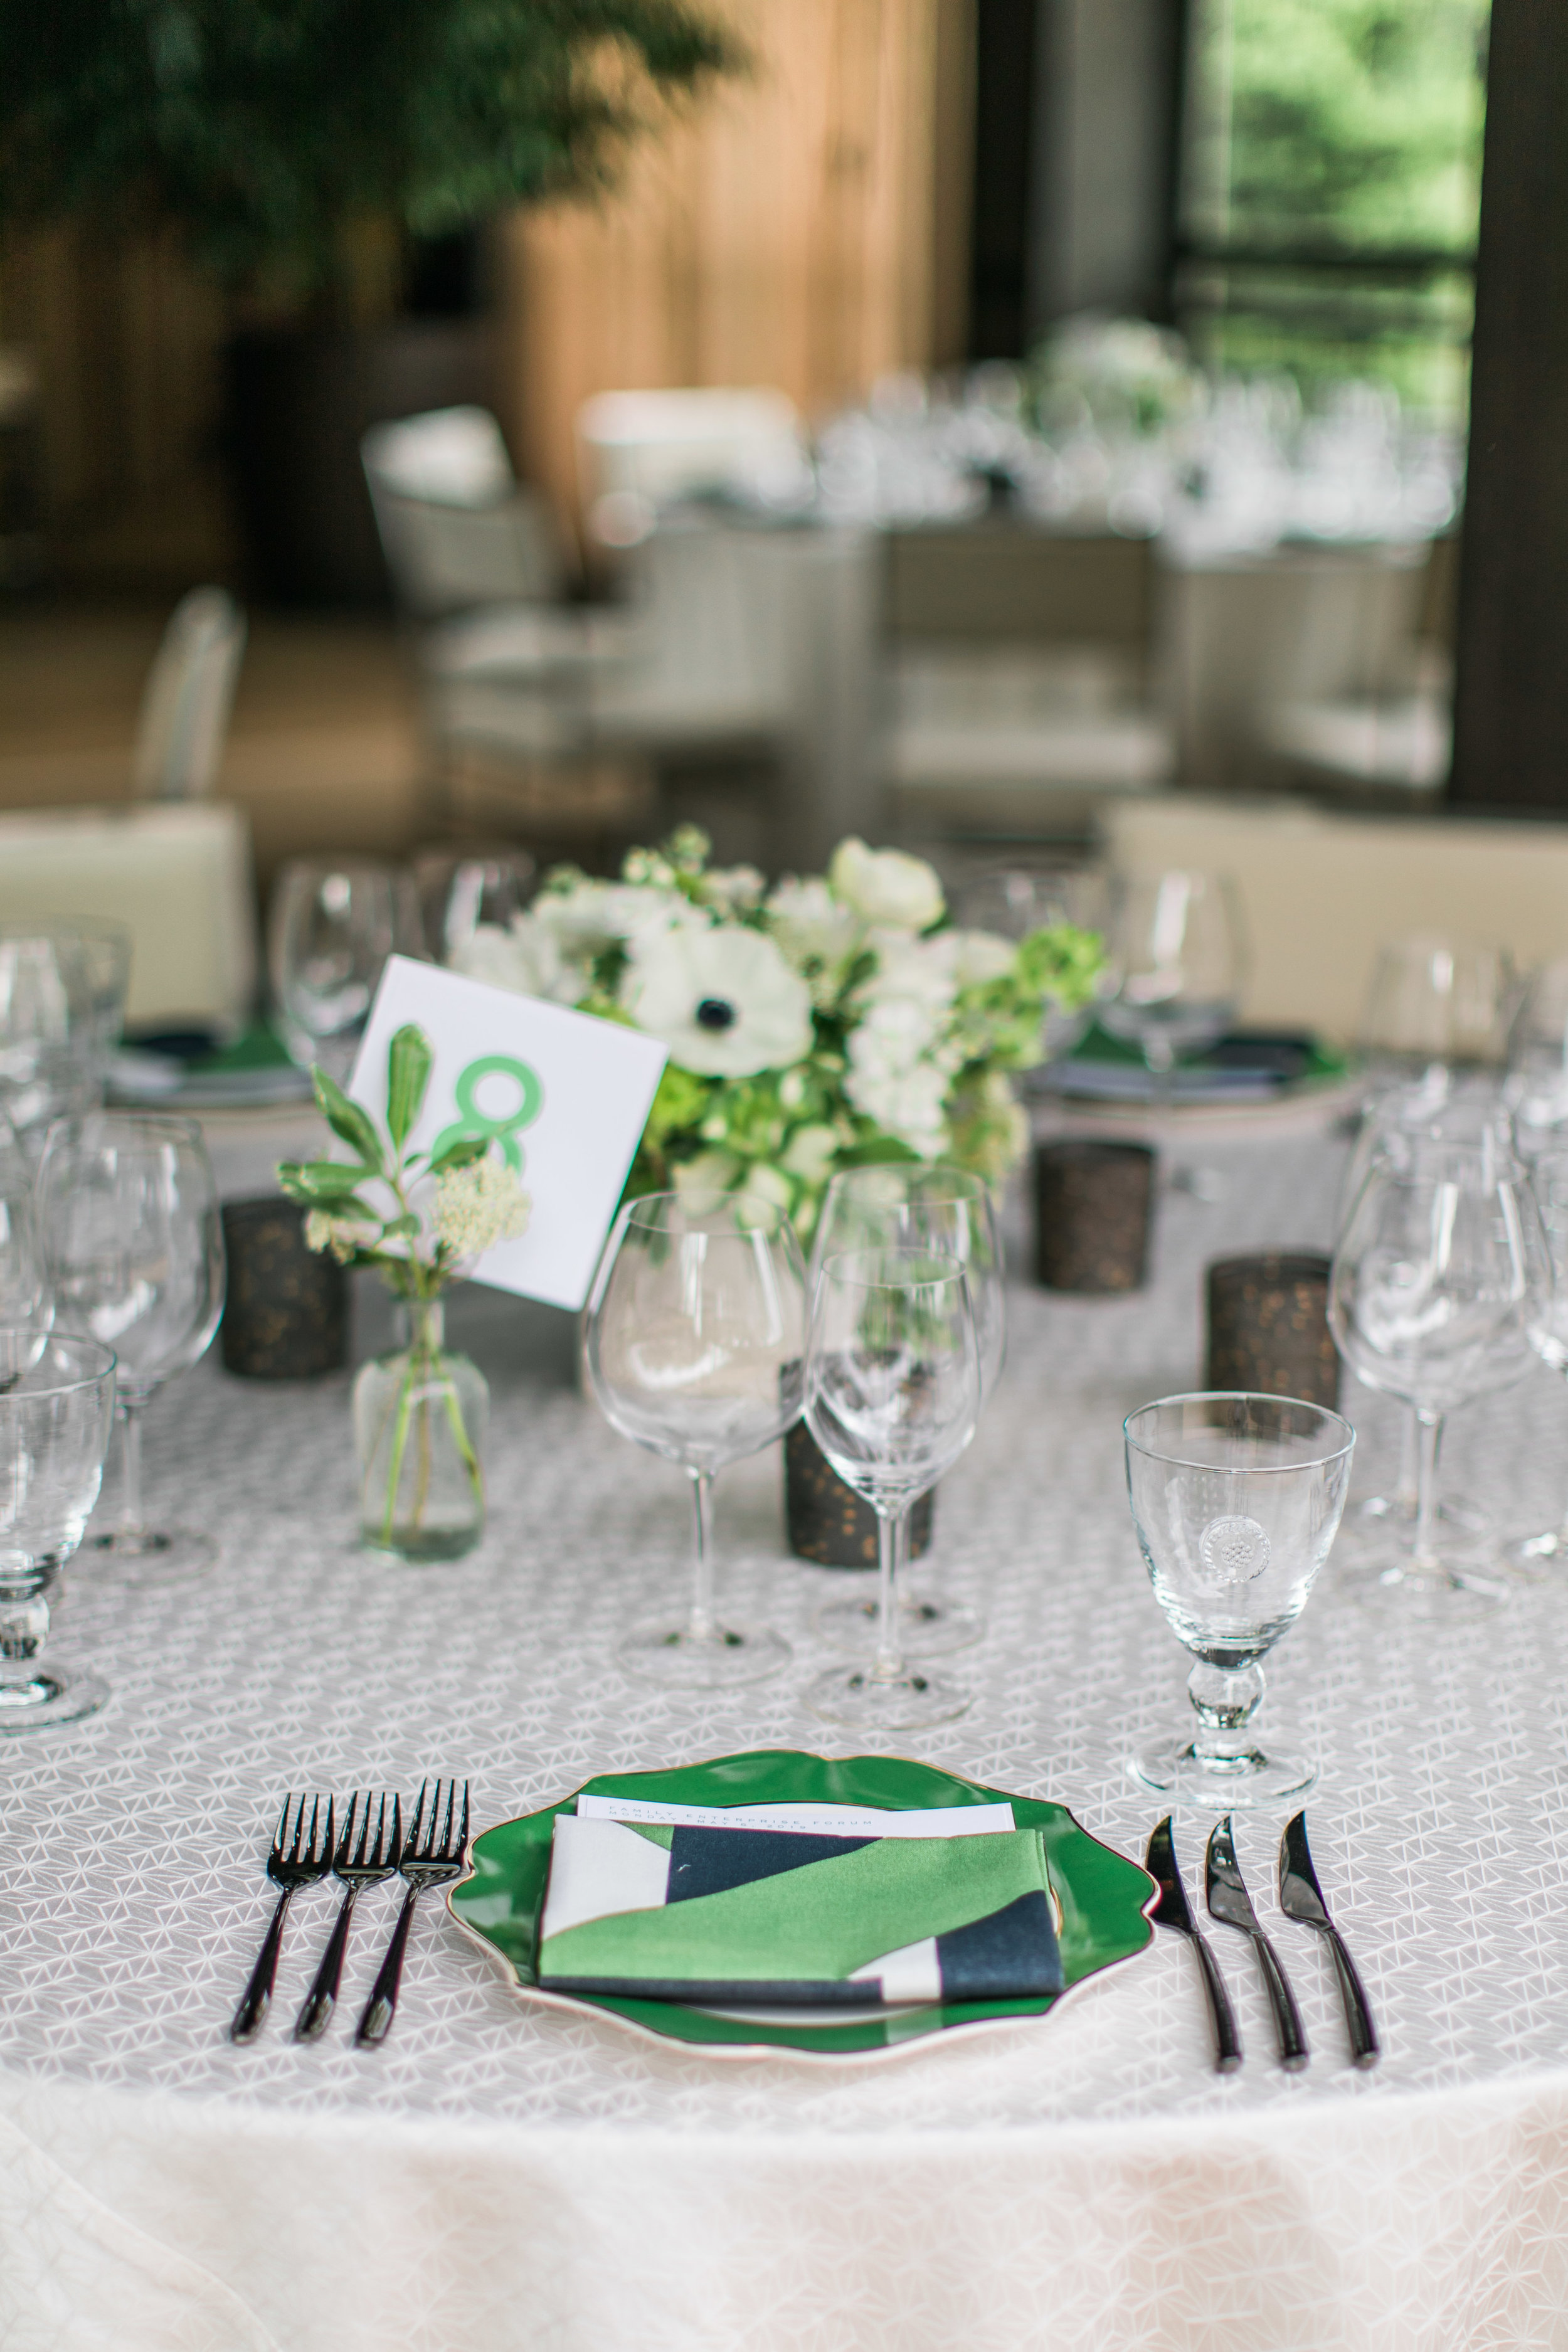 Meadowood-Event-Photos-by-JBJ-Pictures-1.jpg